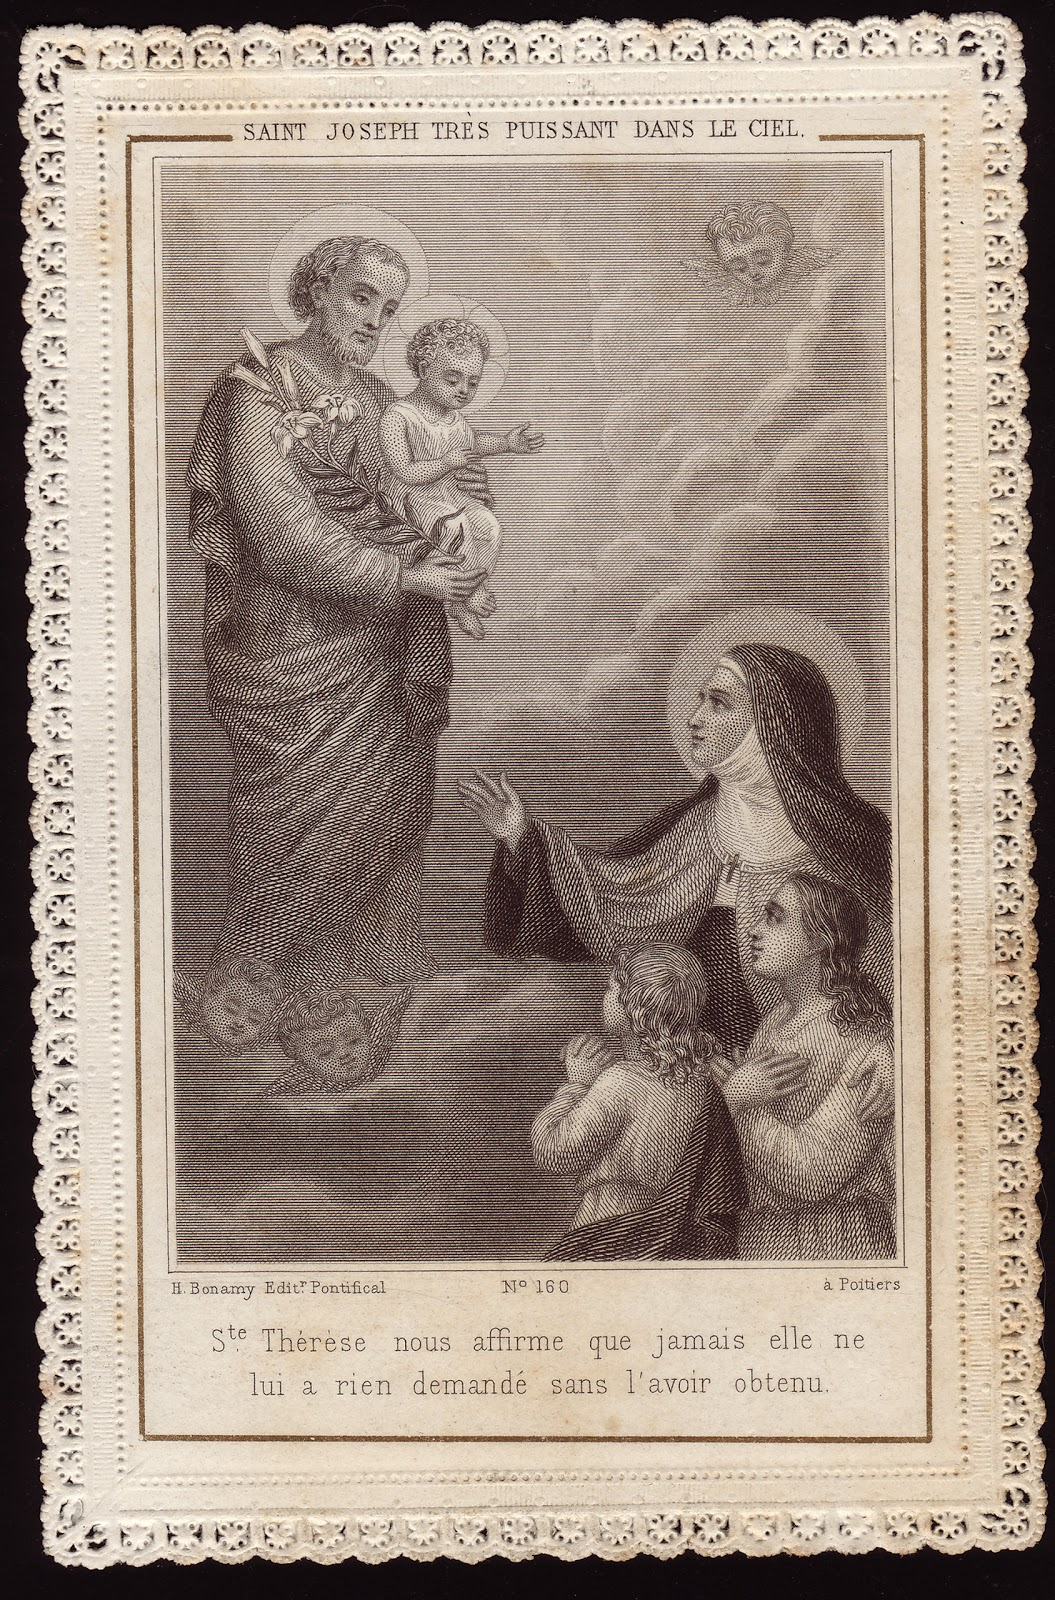 [St.+Joseph+most+powerful+in+heaven+-+St.+Teresa...+Bonamy+160jpg]